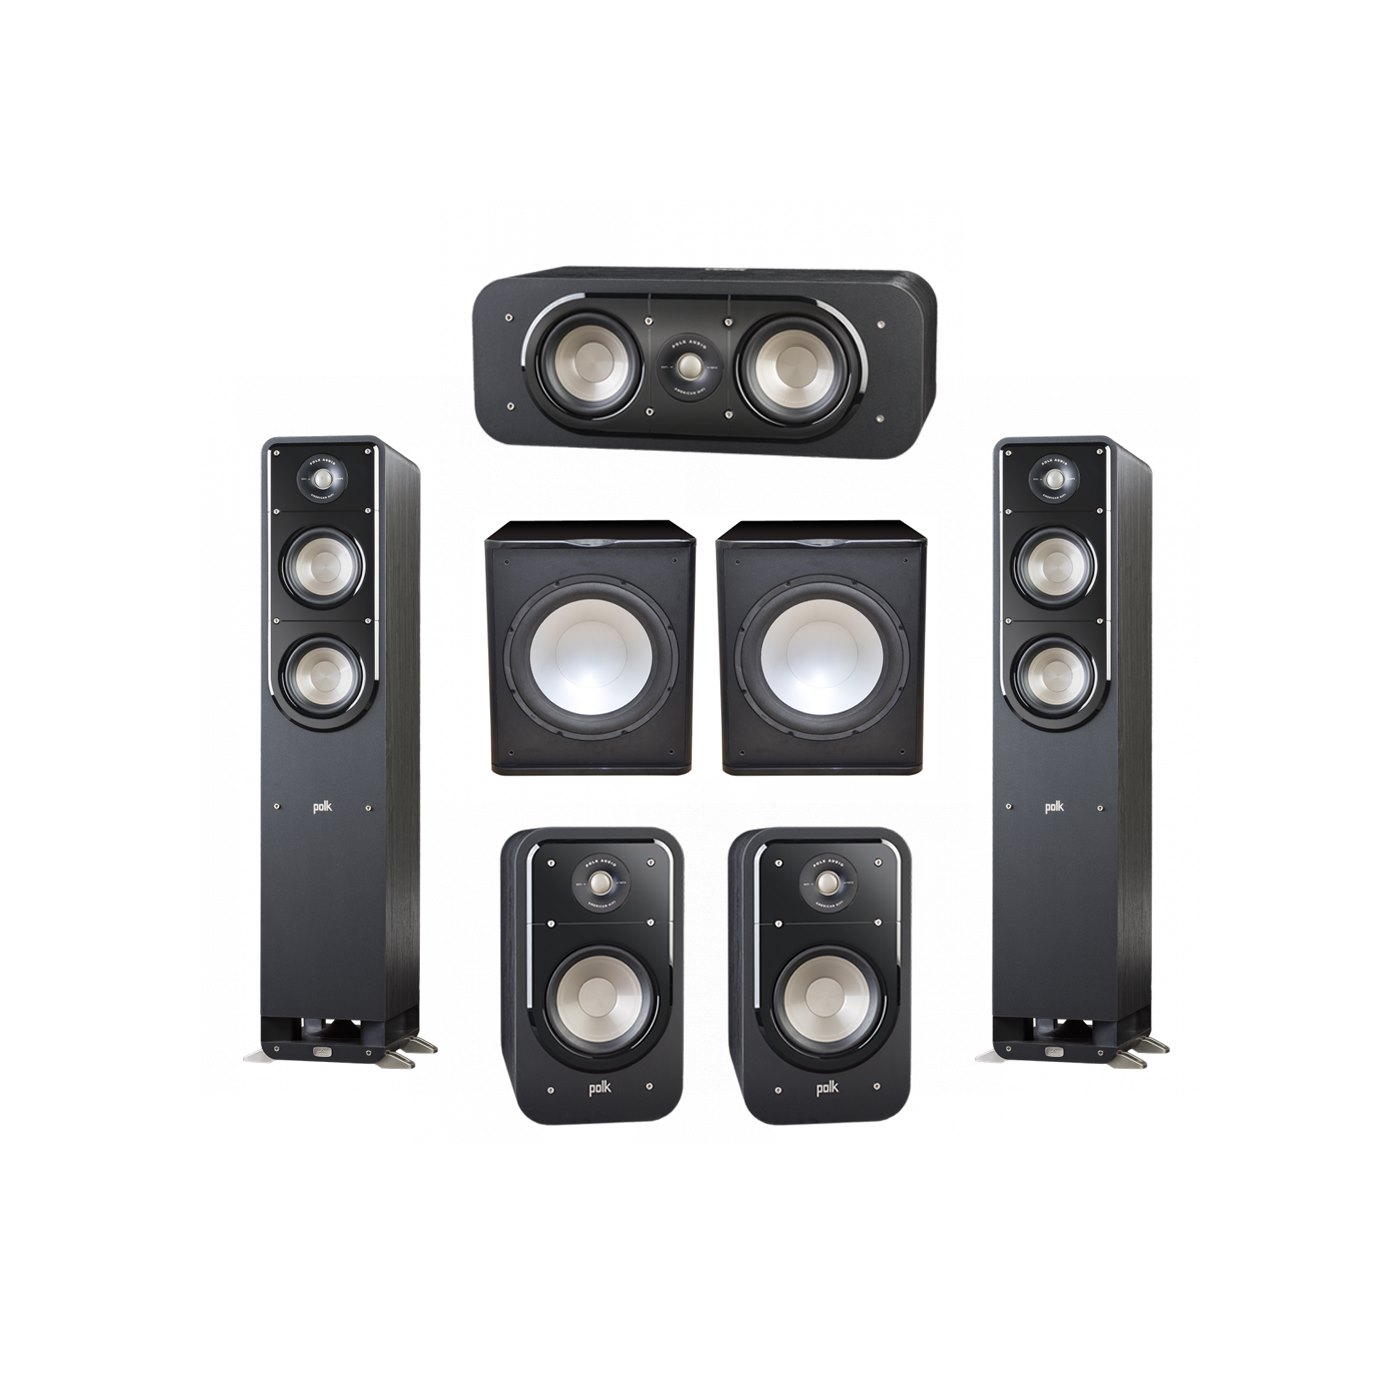 Polk Audio Signature 5.2 System with 2 S50 Tower Speaker, 1 Polk S30 Center Speaker, 2 Polk S20 Bookshelf Speaker, 2 Premier Acoustic PA-150 Powered Subwoofer